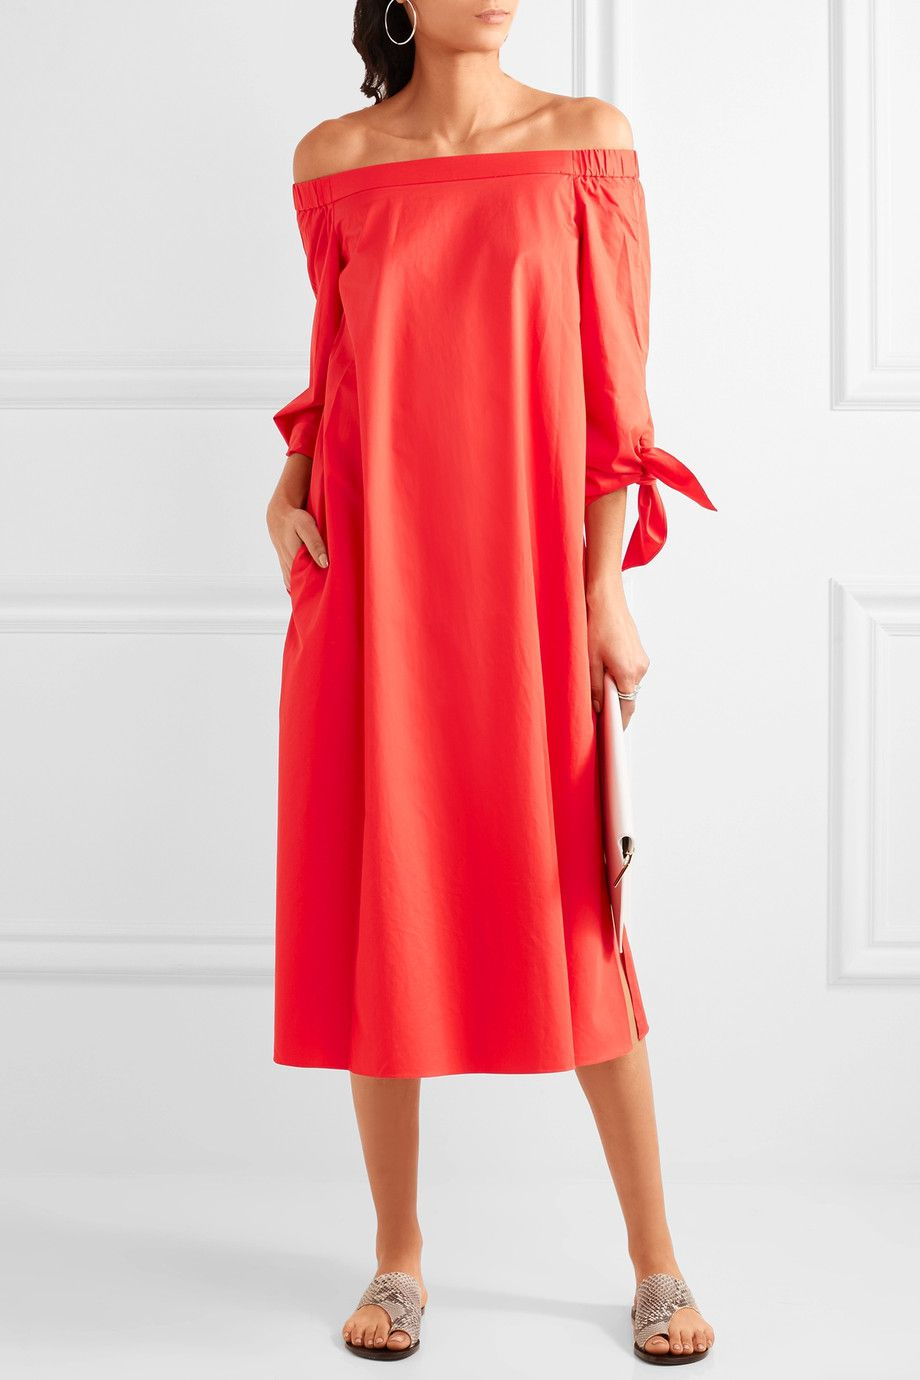 A model wearing a red off the shoulder dress